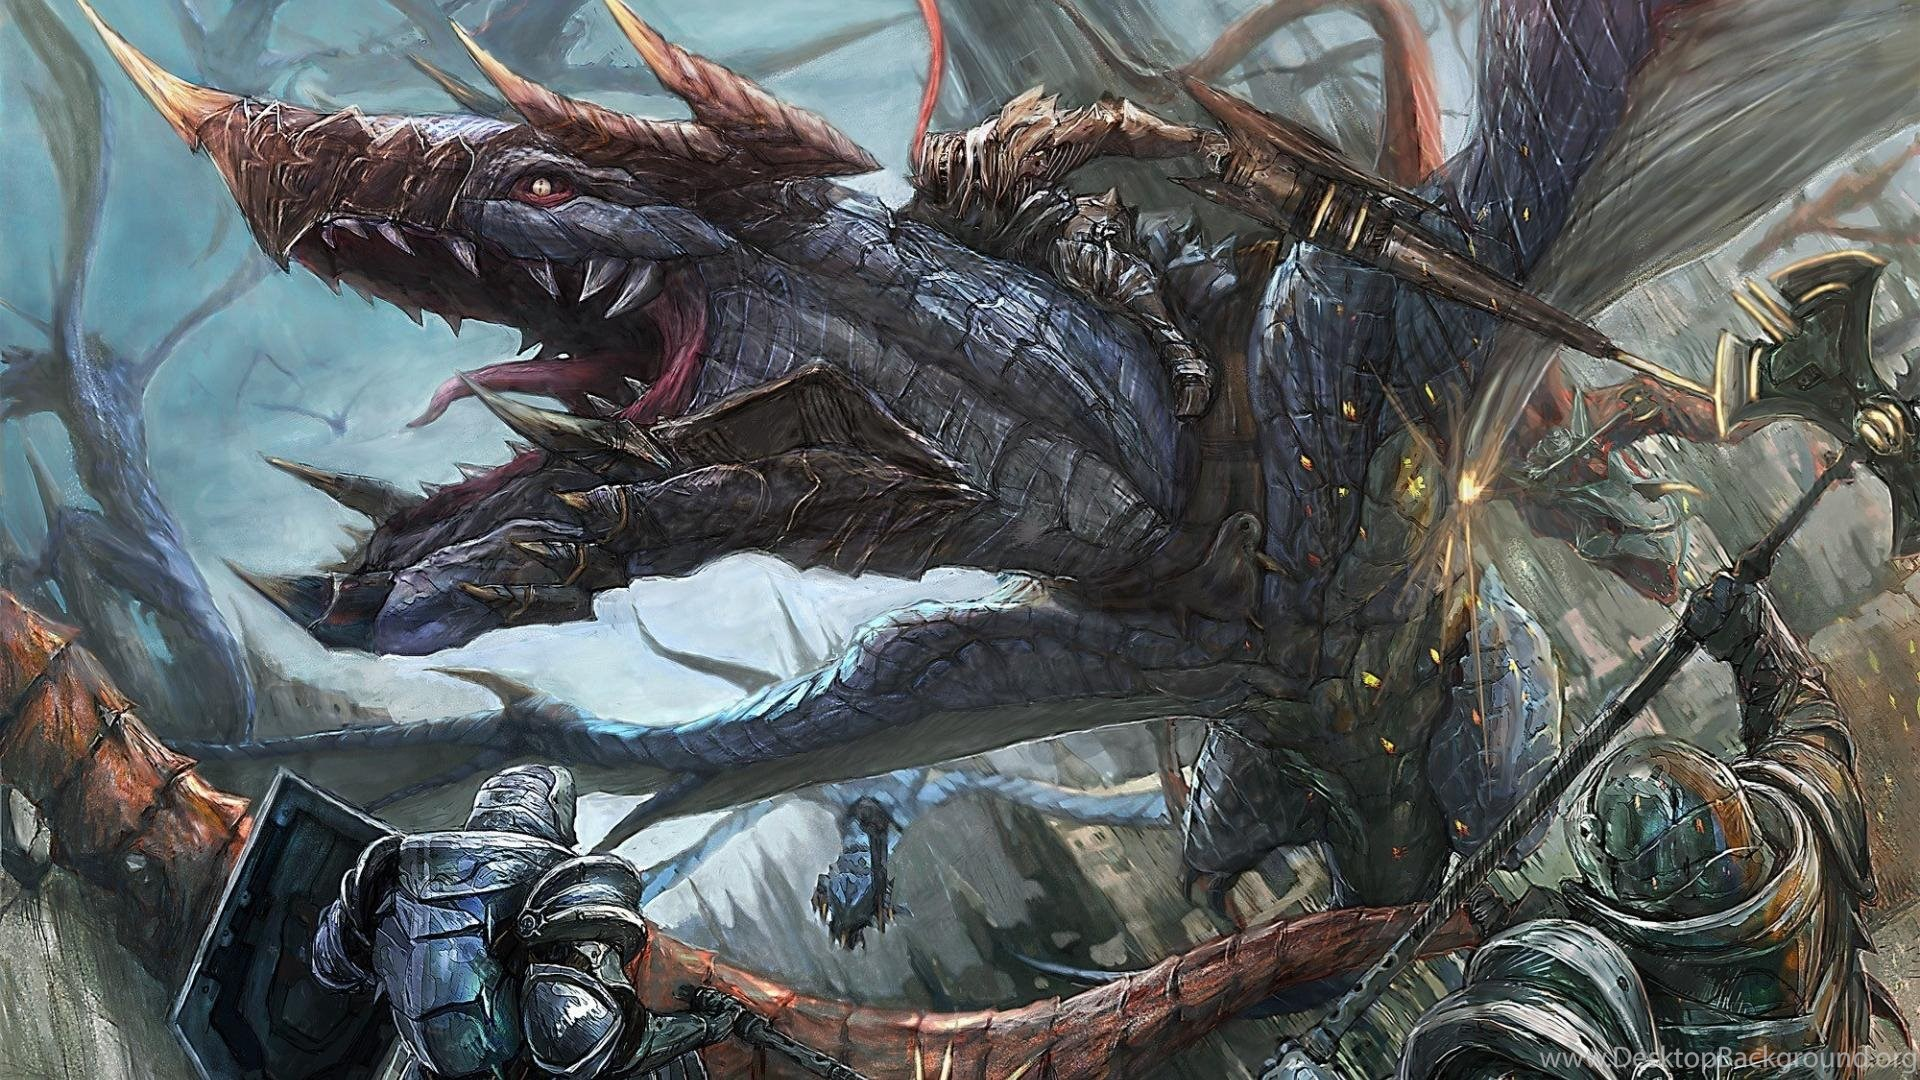 3d Fantasy Dragons Art Armor Artwork Warriors Fighting Battle D Hd Desktop Background A fantastic series of illustrations by artist frost llamzon mashing up the avengers inside the world of dungeons and dragons. 3d fantasy dragons art armor artwork